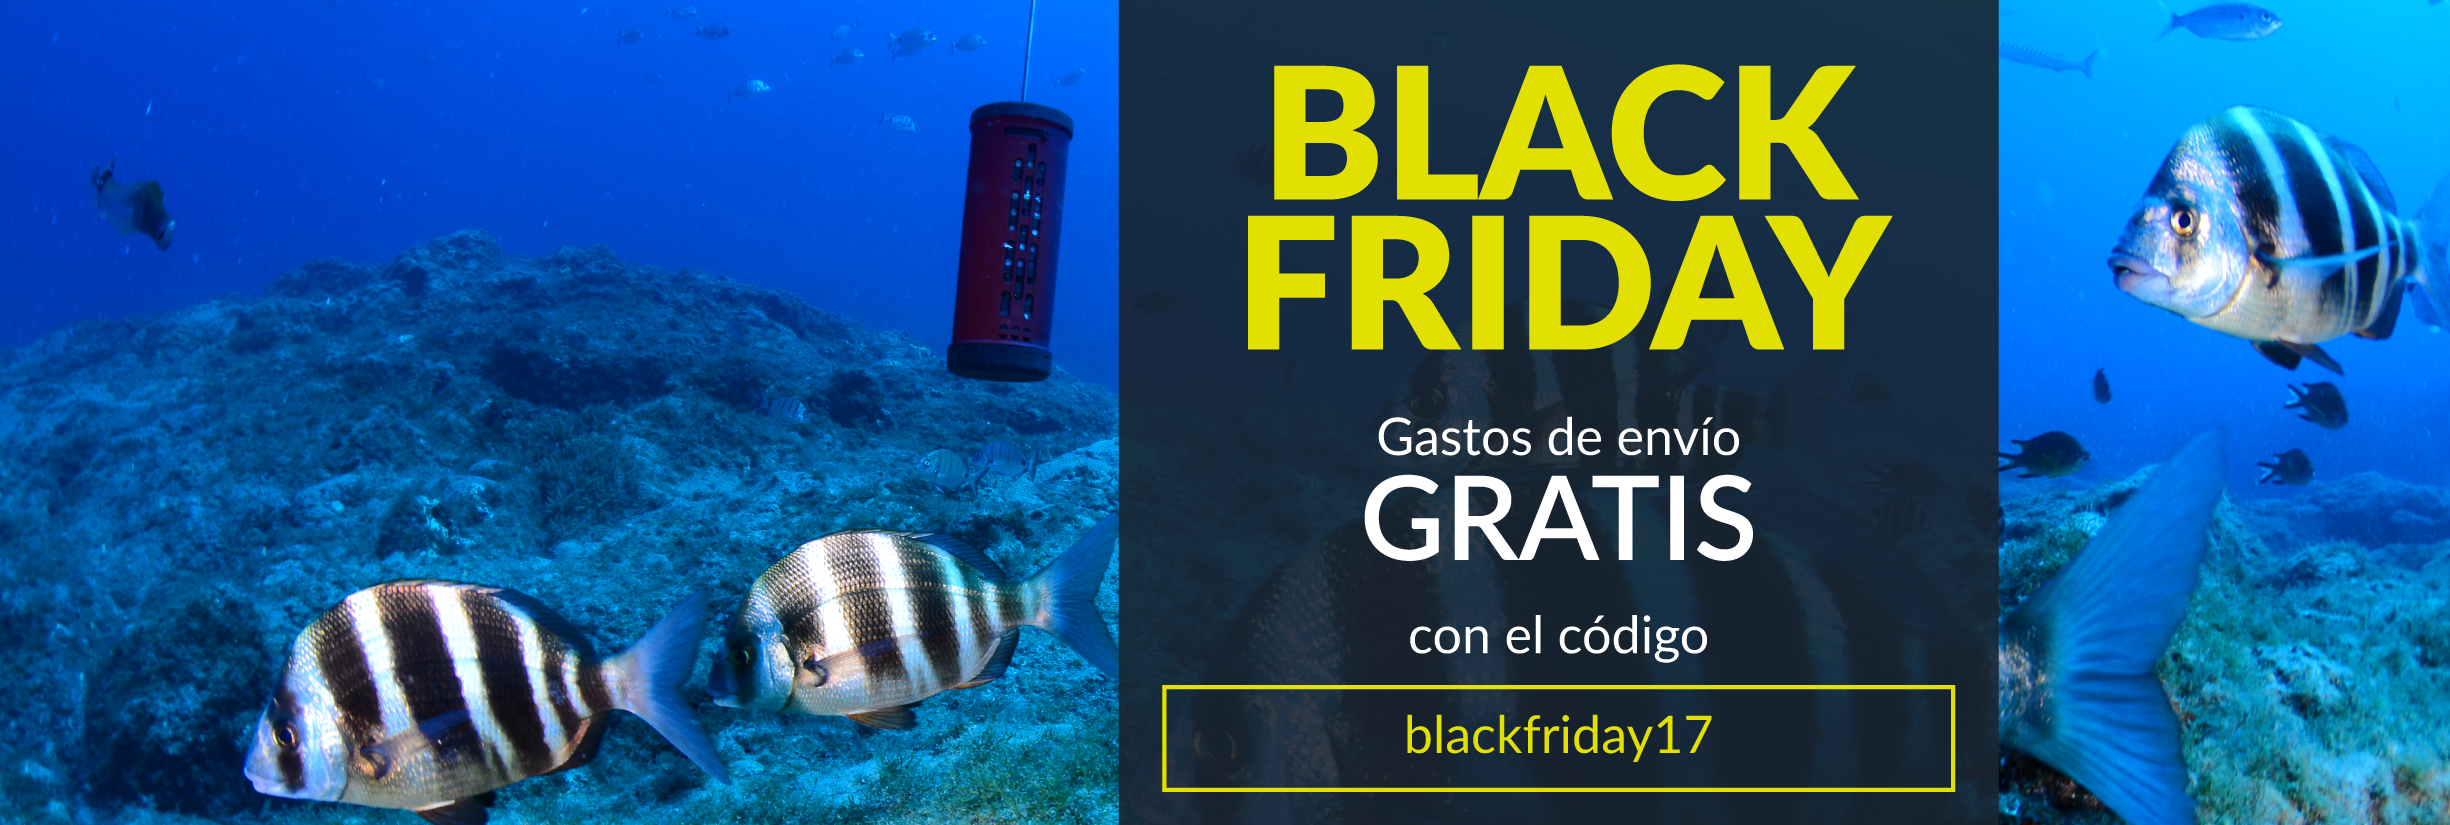 black friday pesca ufishpro